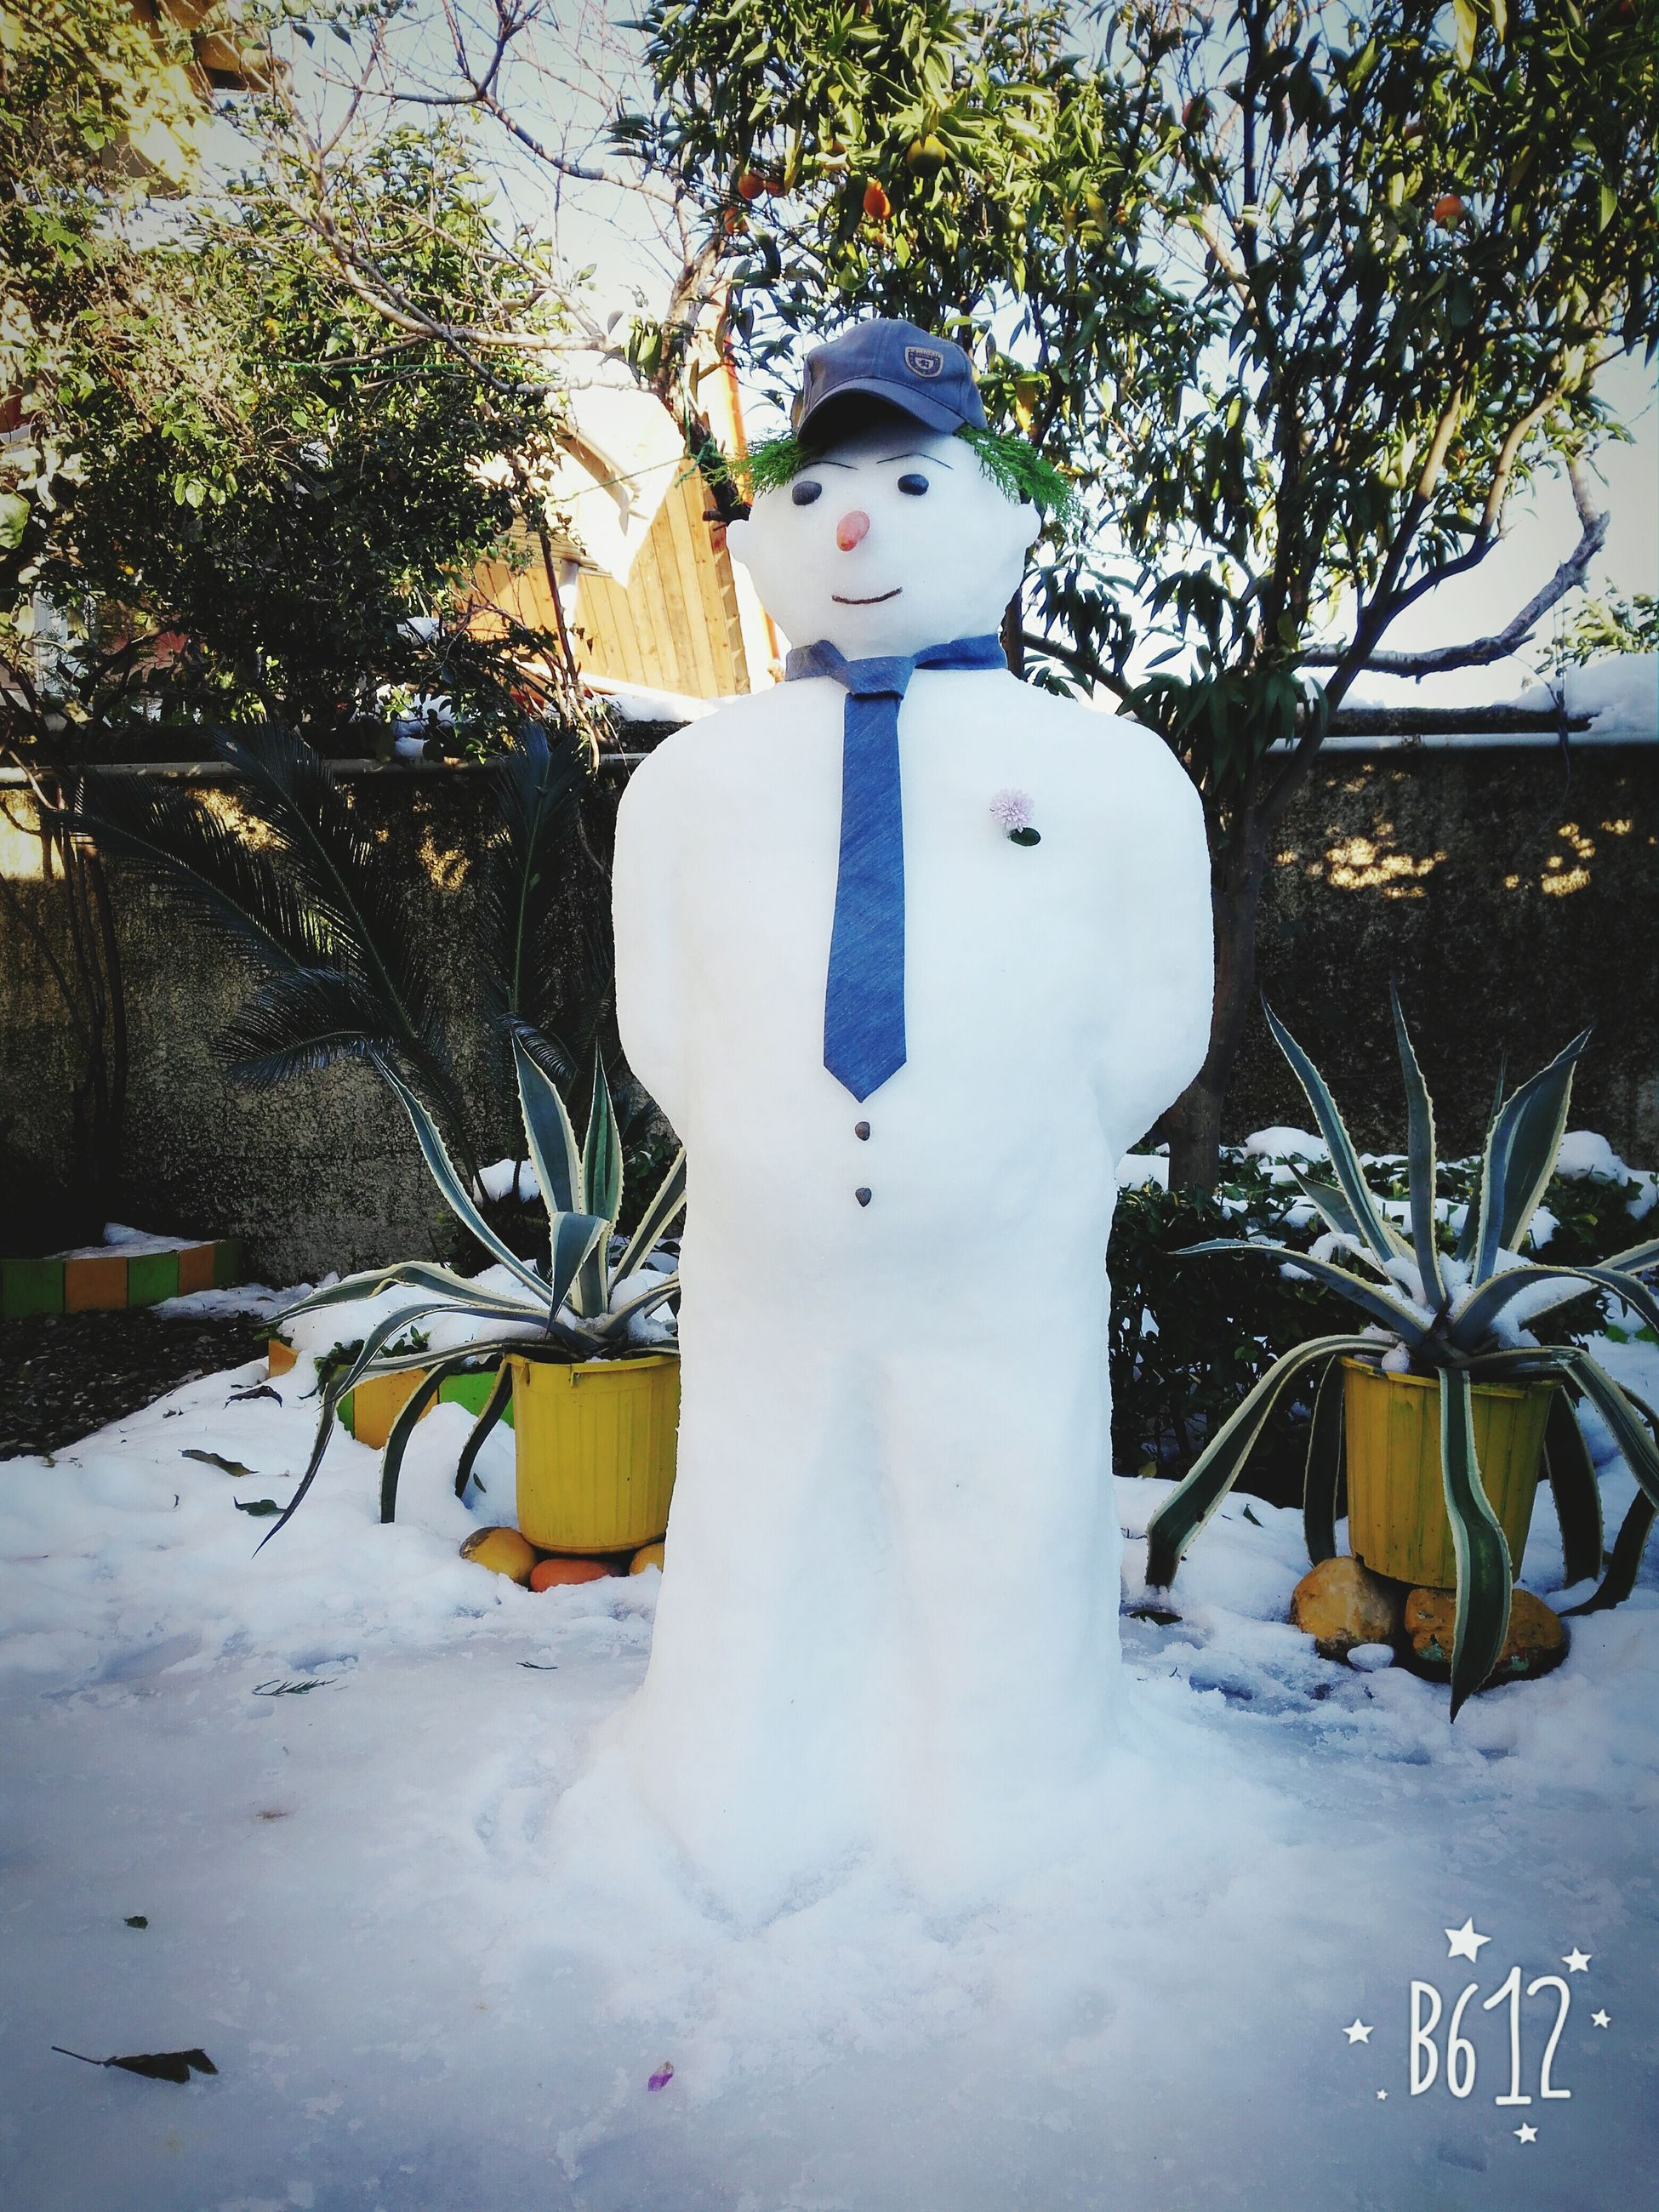 winter, snow, tree, snowman, creativity, nature, human representation, cold temperature, day, outdoors, no people